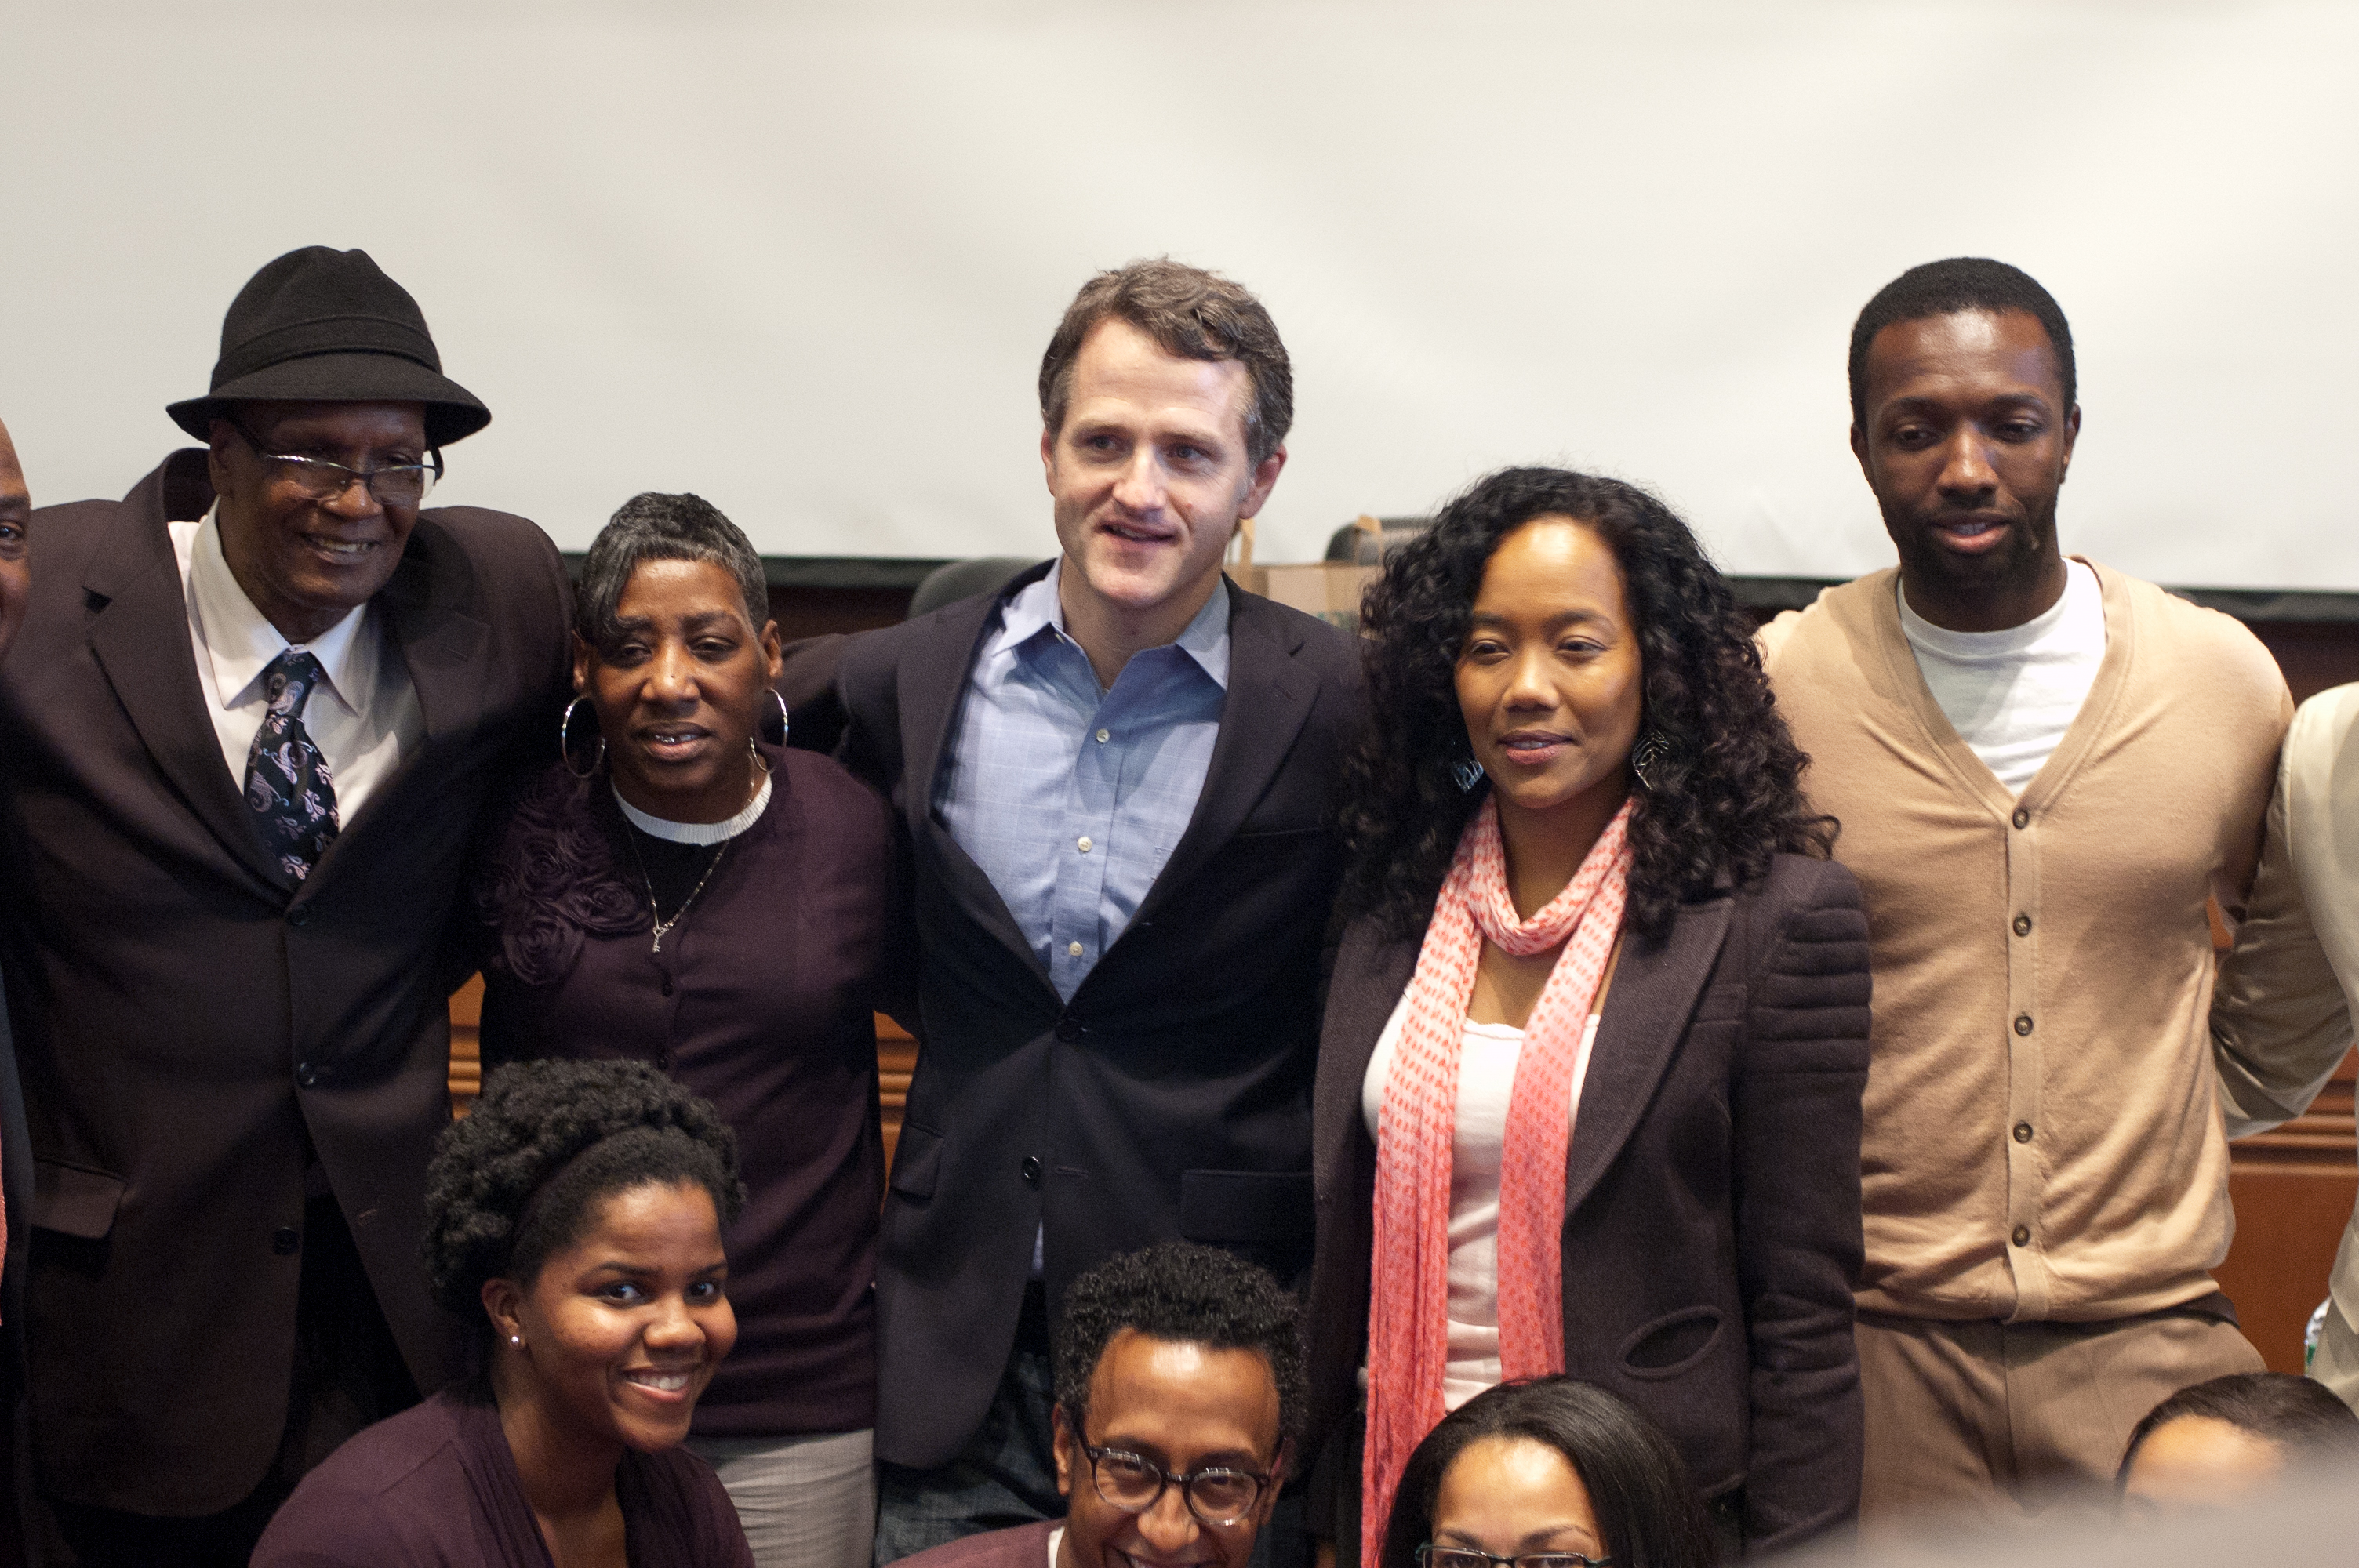 The Wire Cast | File The Wire Cast 5662495475 Jpg Wikimedia Commons